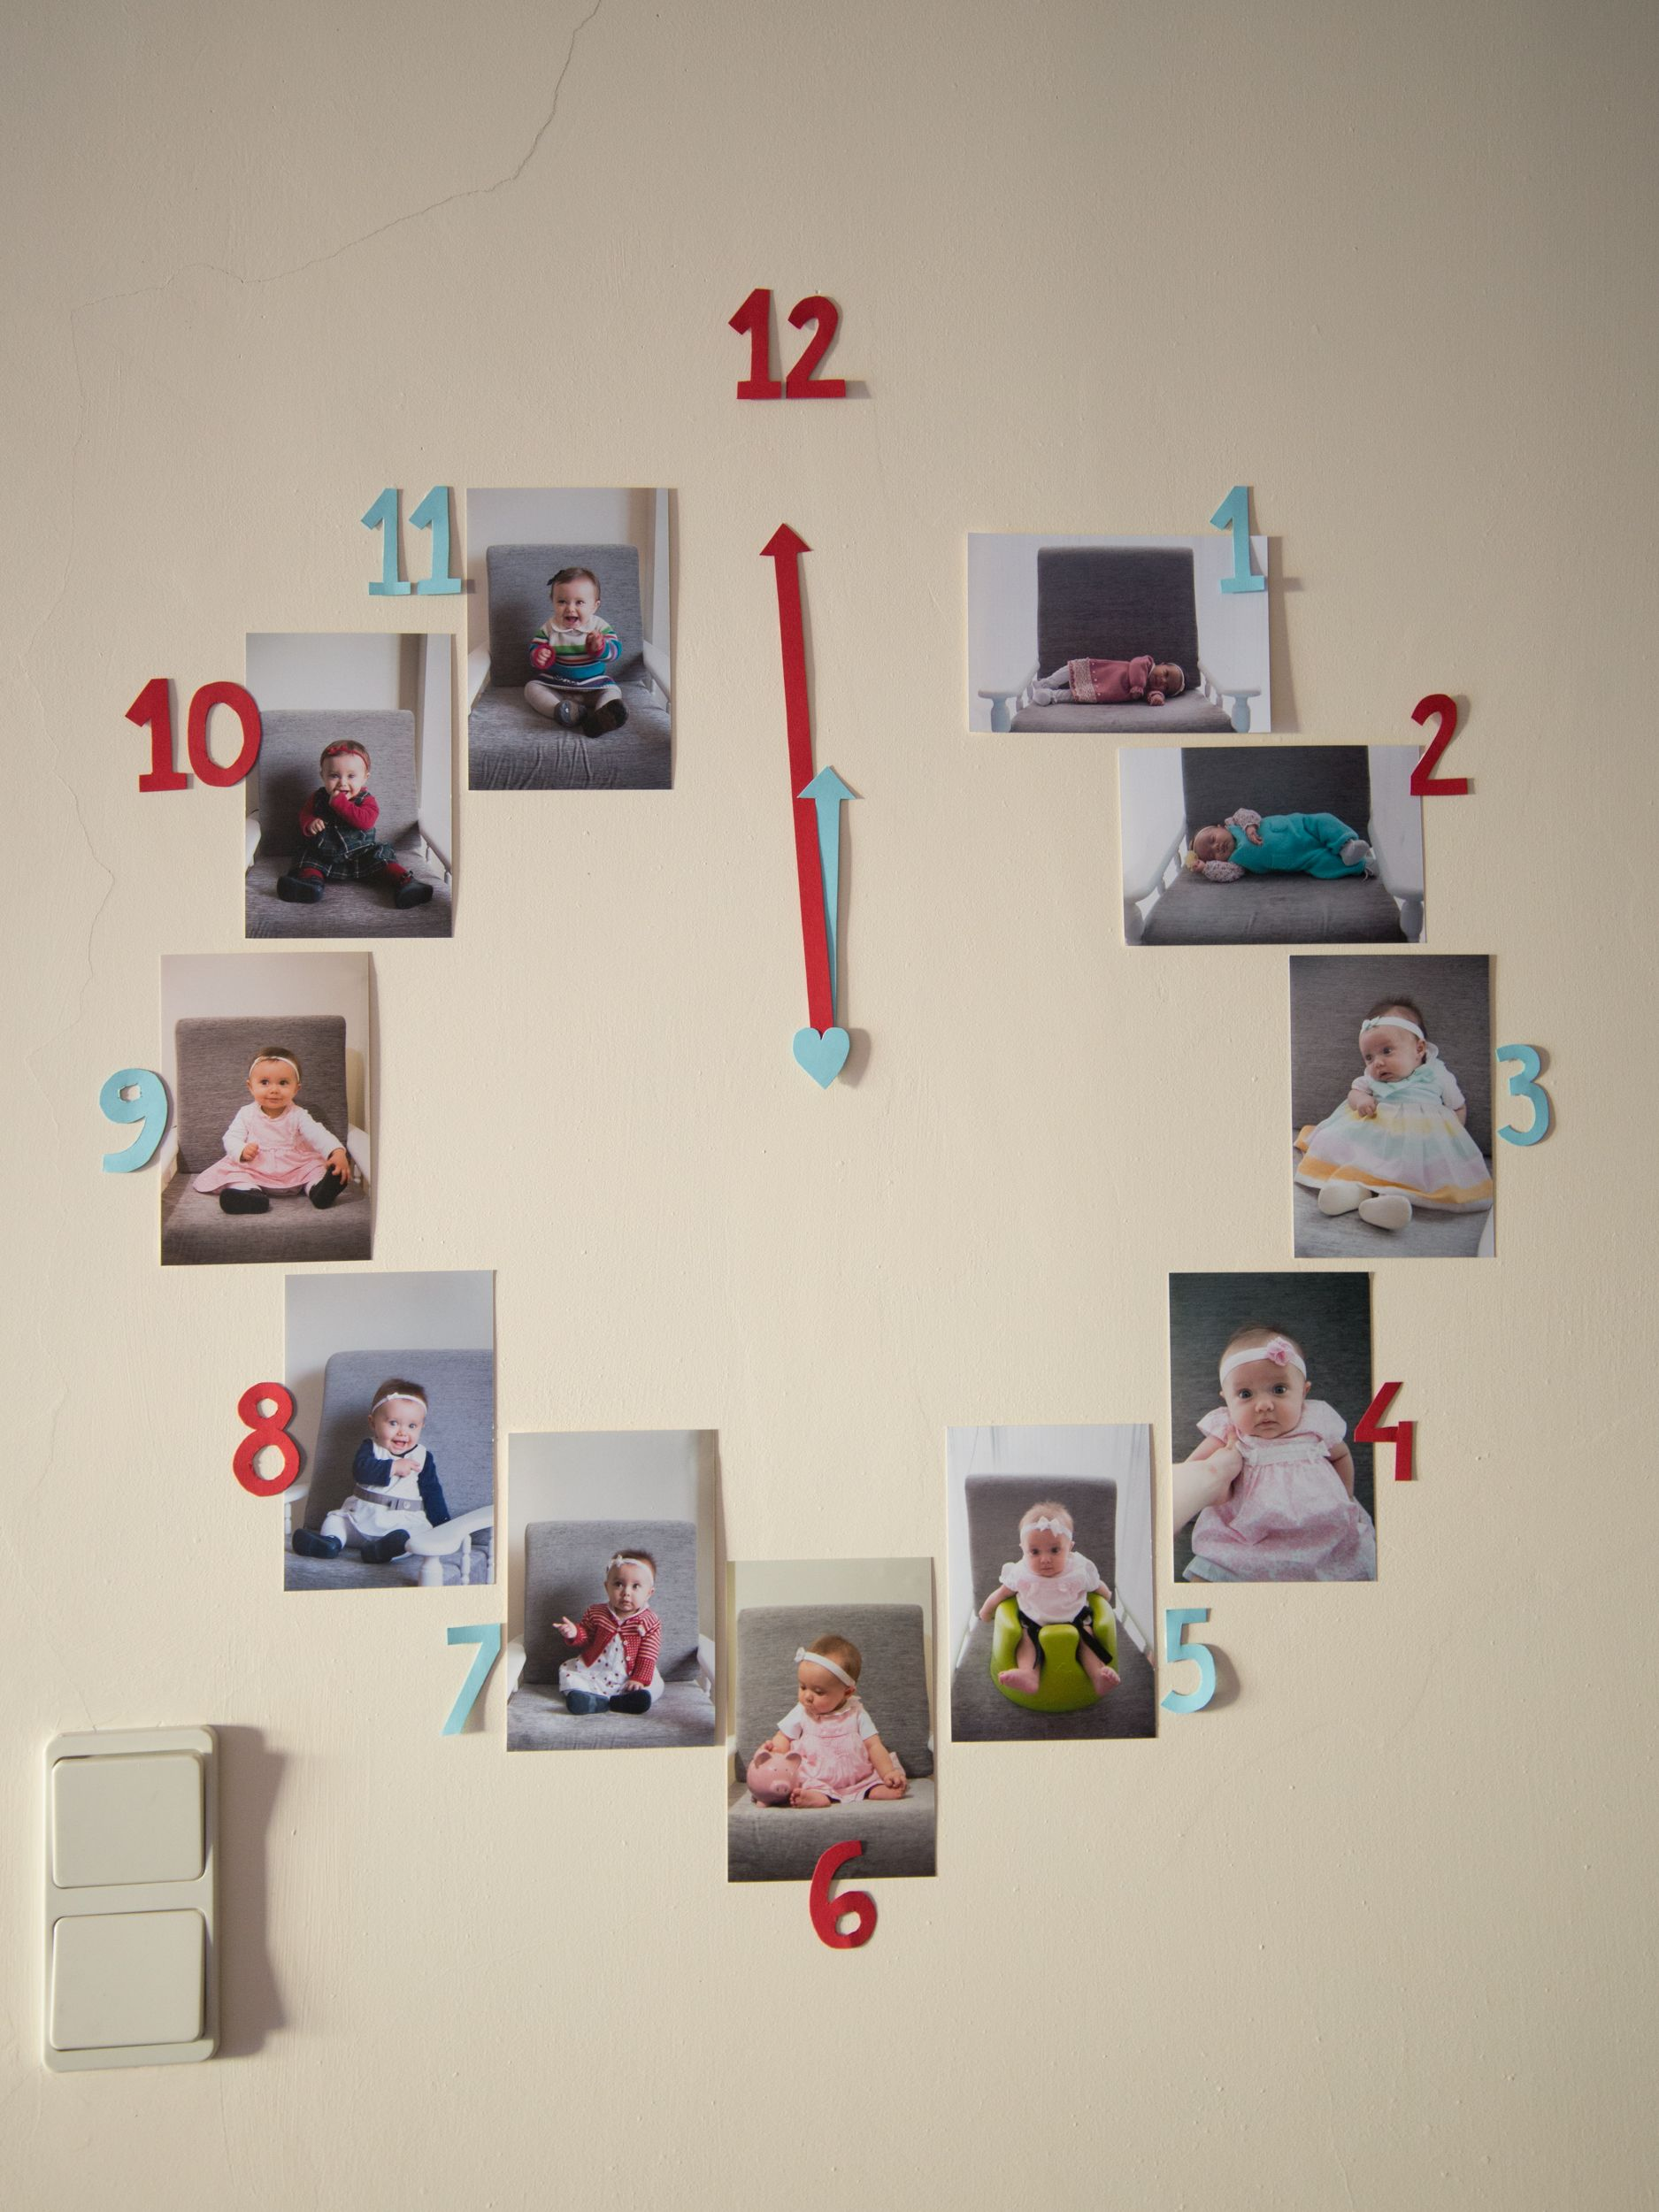 1 Year Old Room Ideas Clock With Photos From The First Year Of Life Party